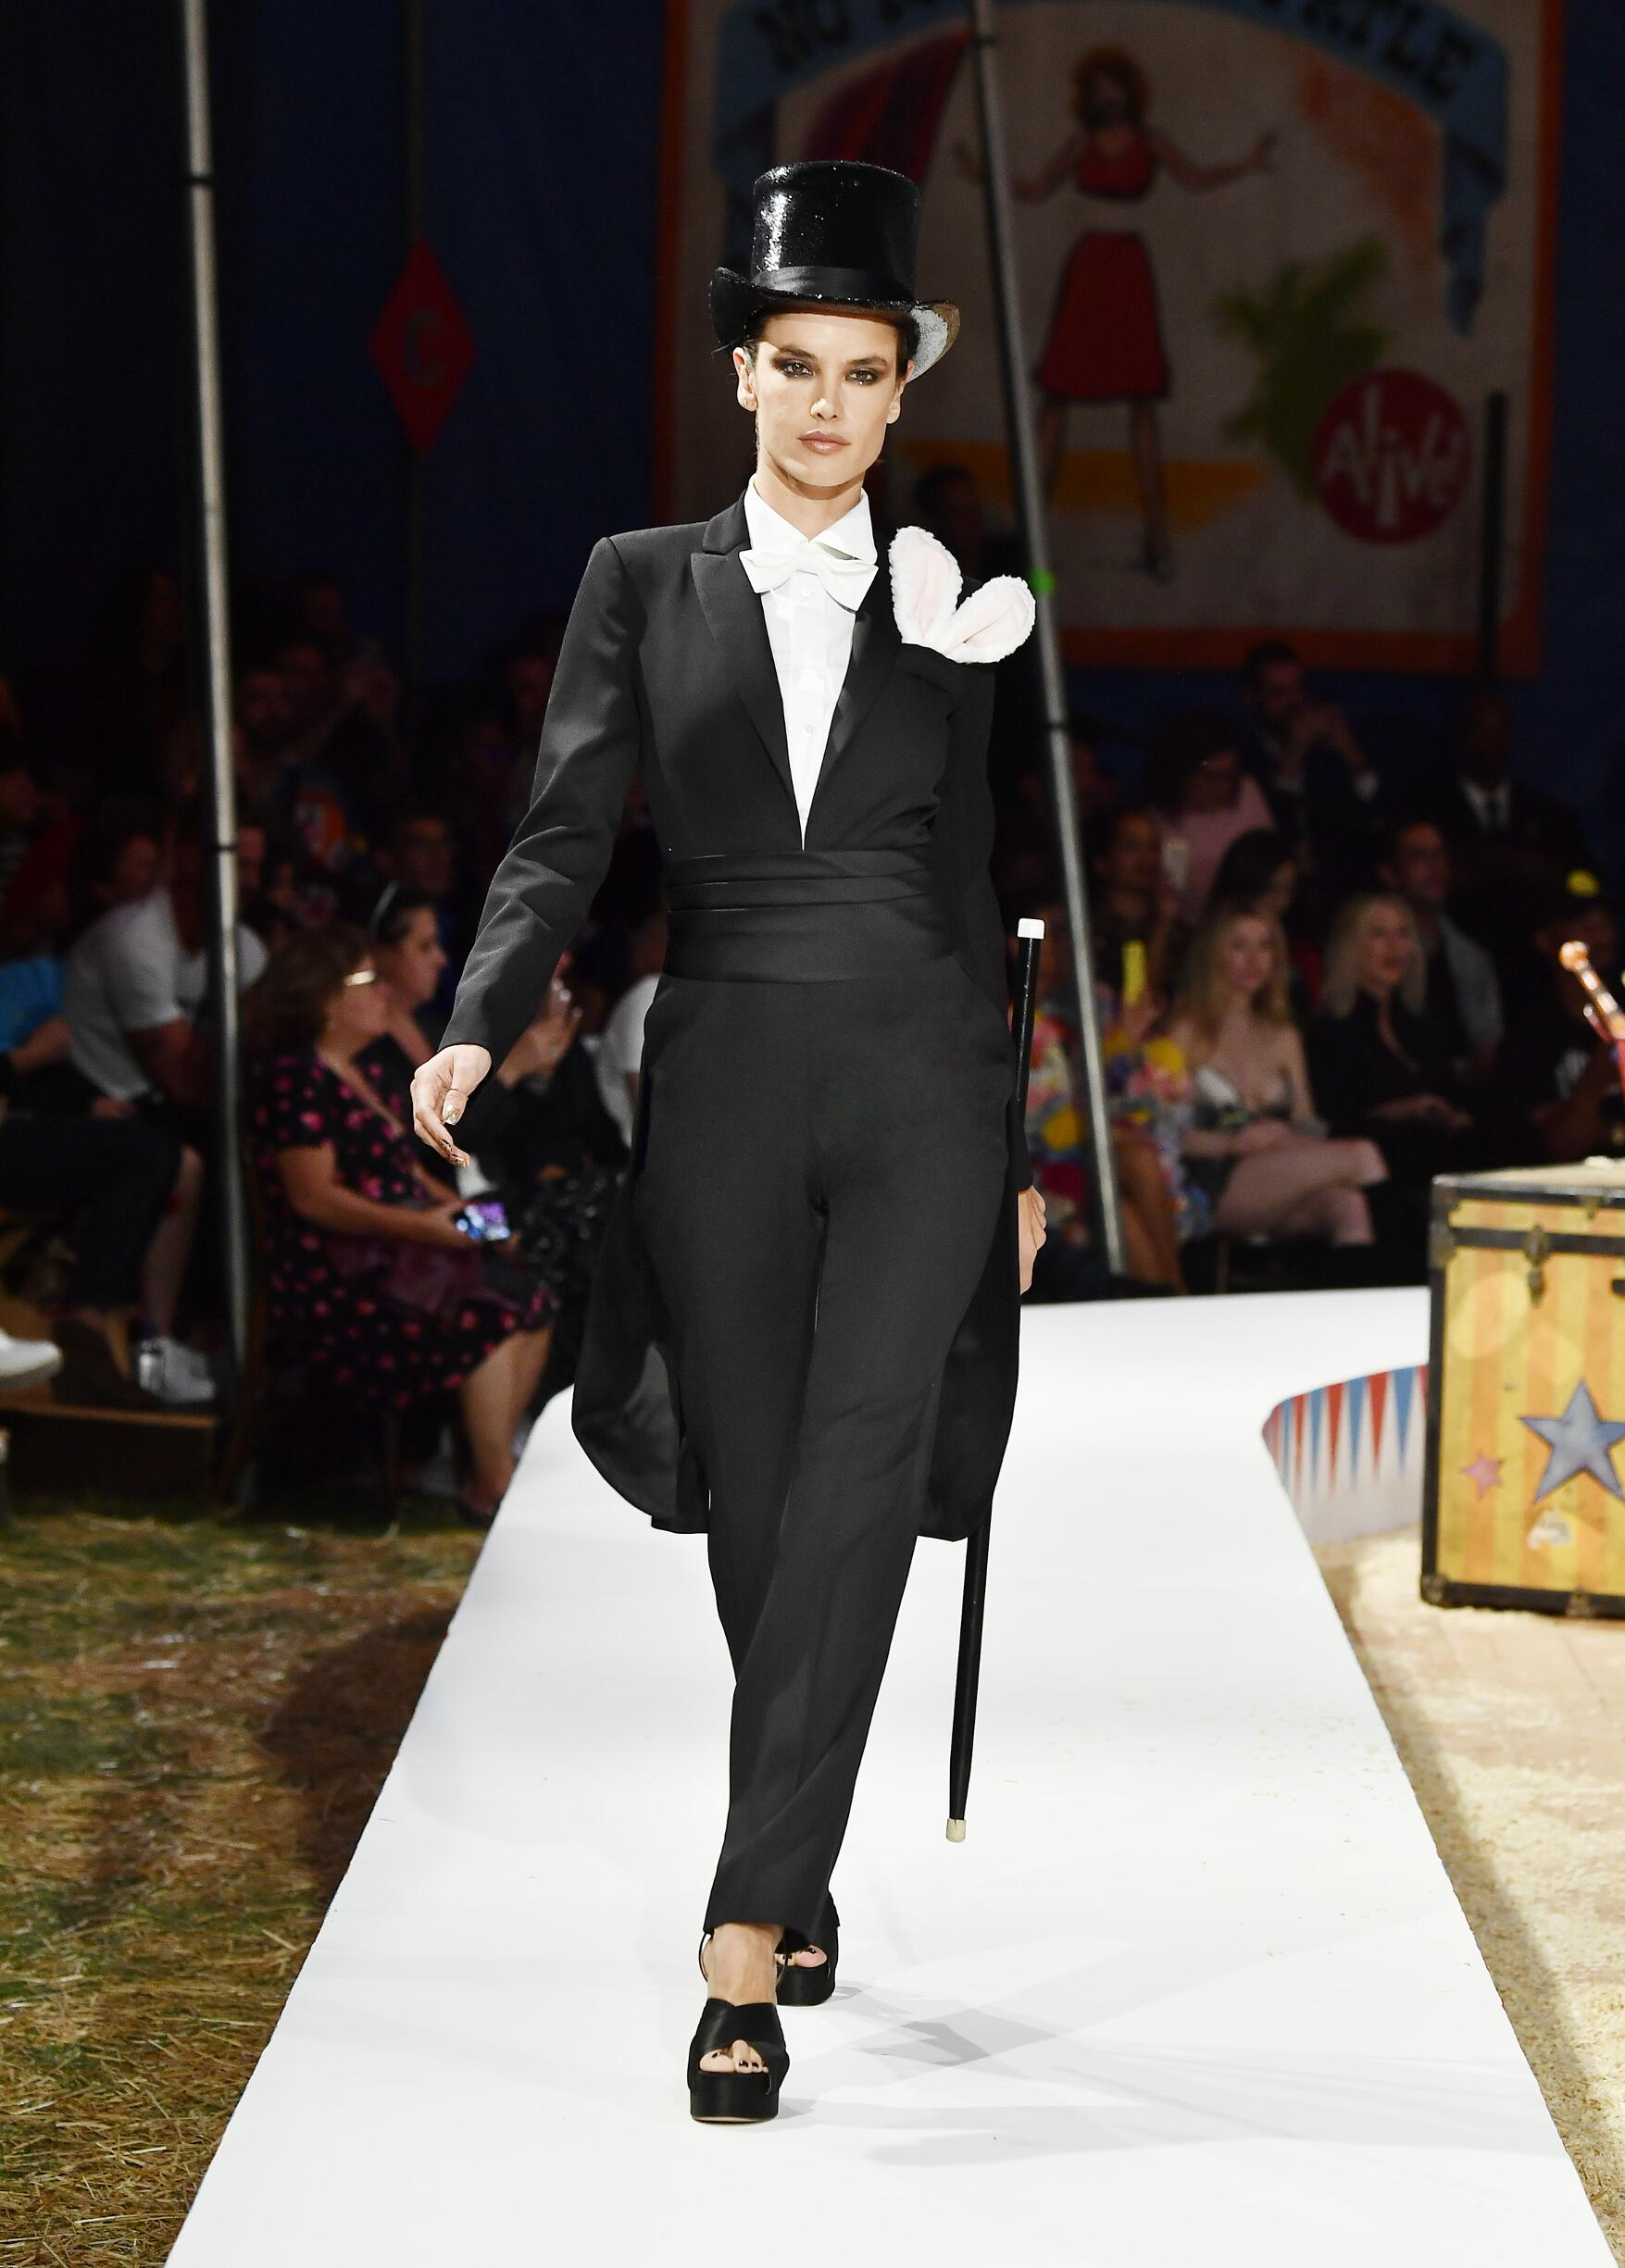 Moschino Spring Summer 2019 Menswear and Women's Resort Collection Look 18 Los Angeles